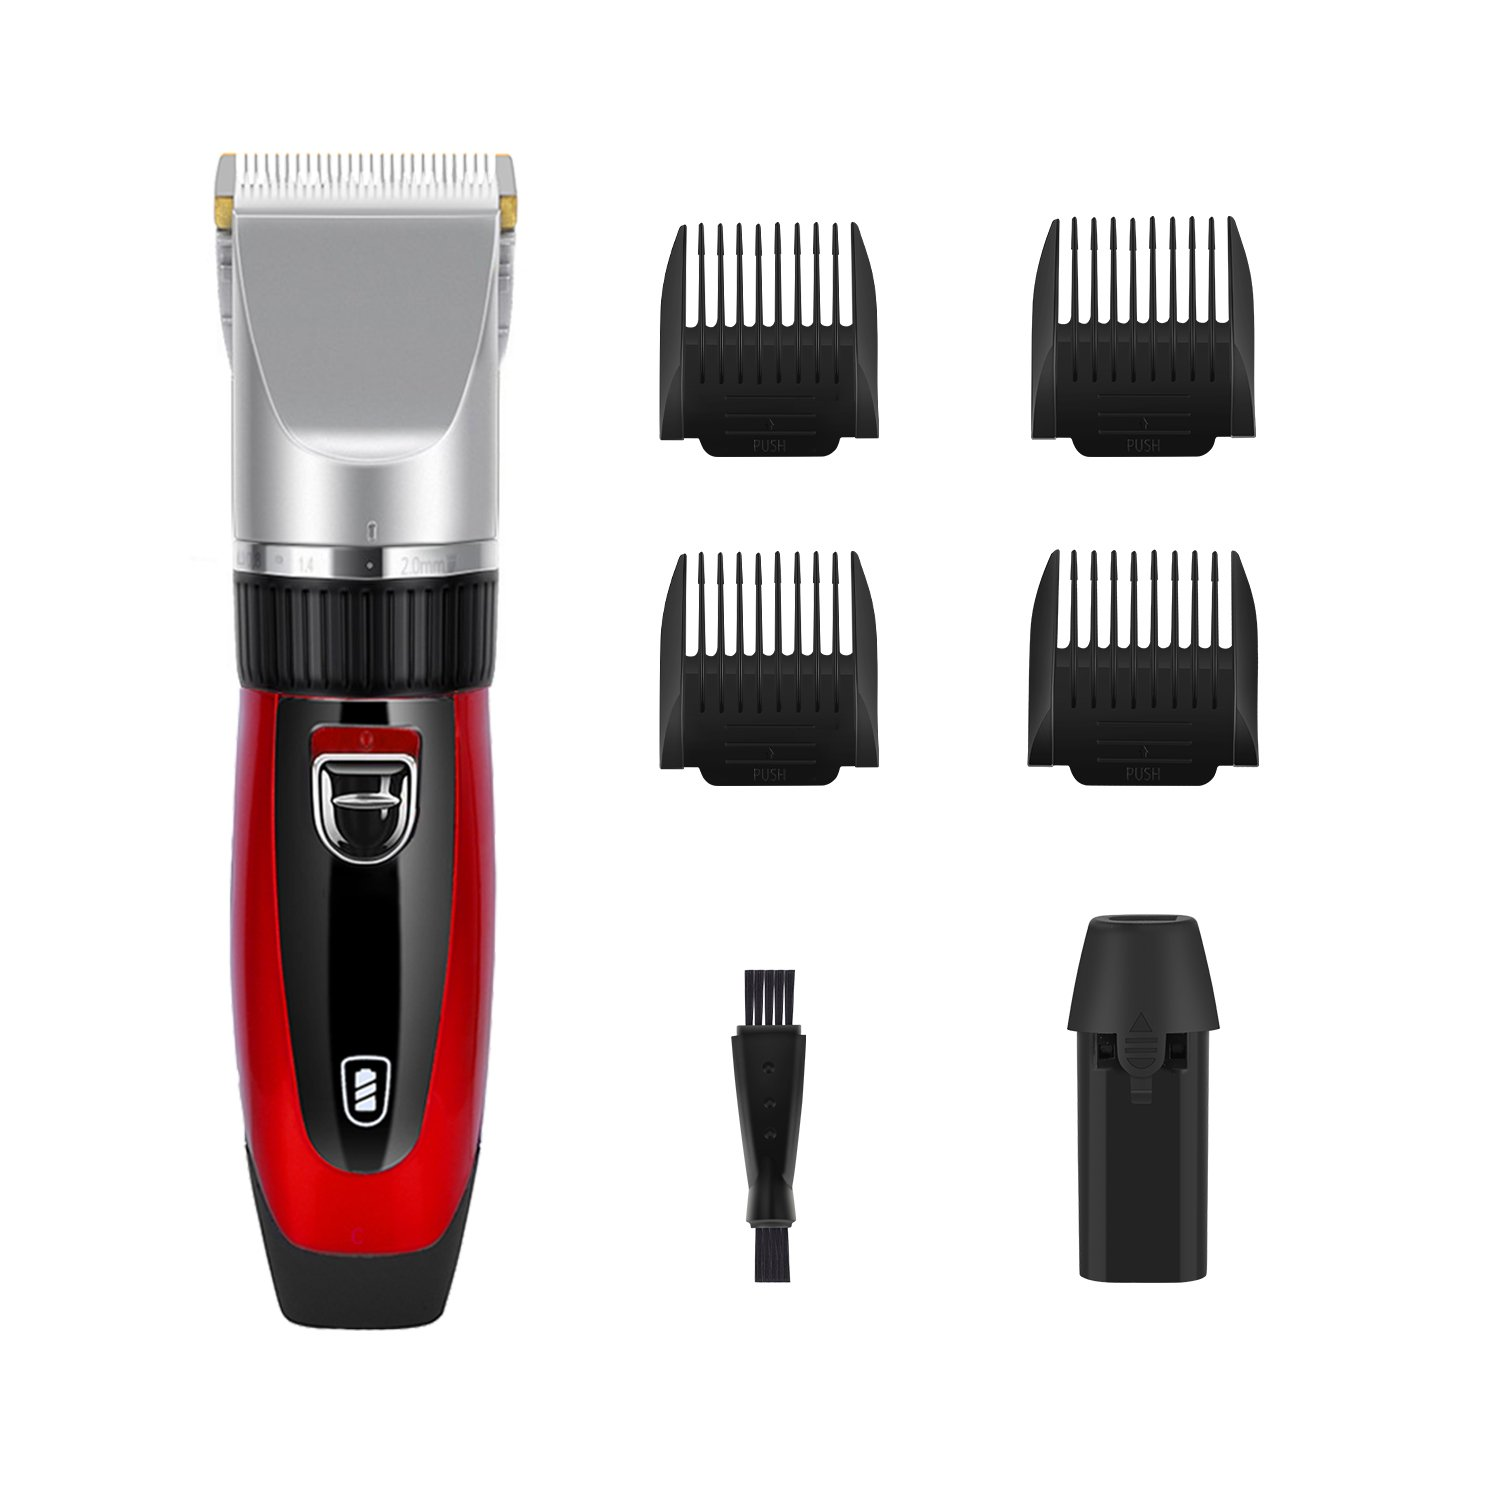 GHB Hair Clippers Hair Trimmers Electric for Men with 4 Combs Cordless Rechargeable Smile&Satisfaction